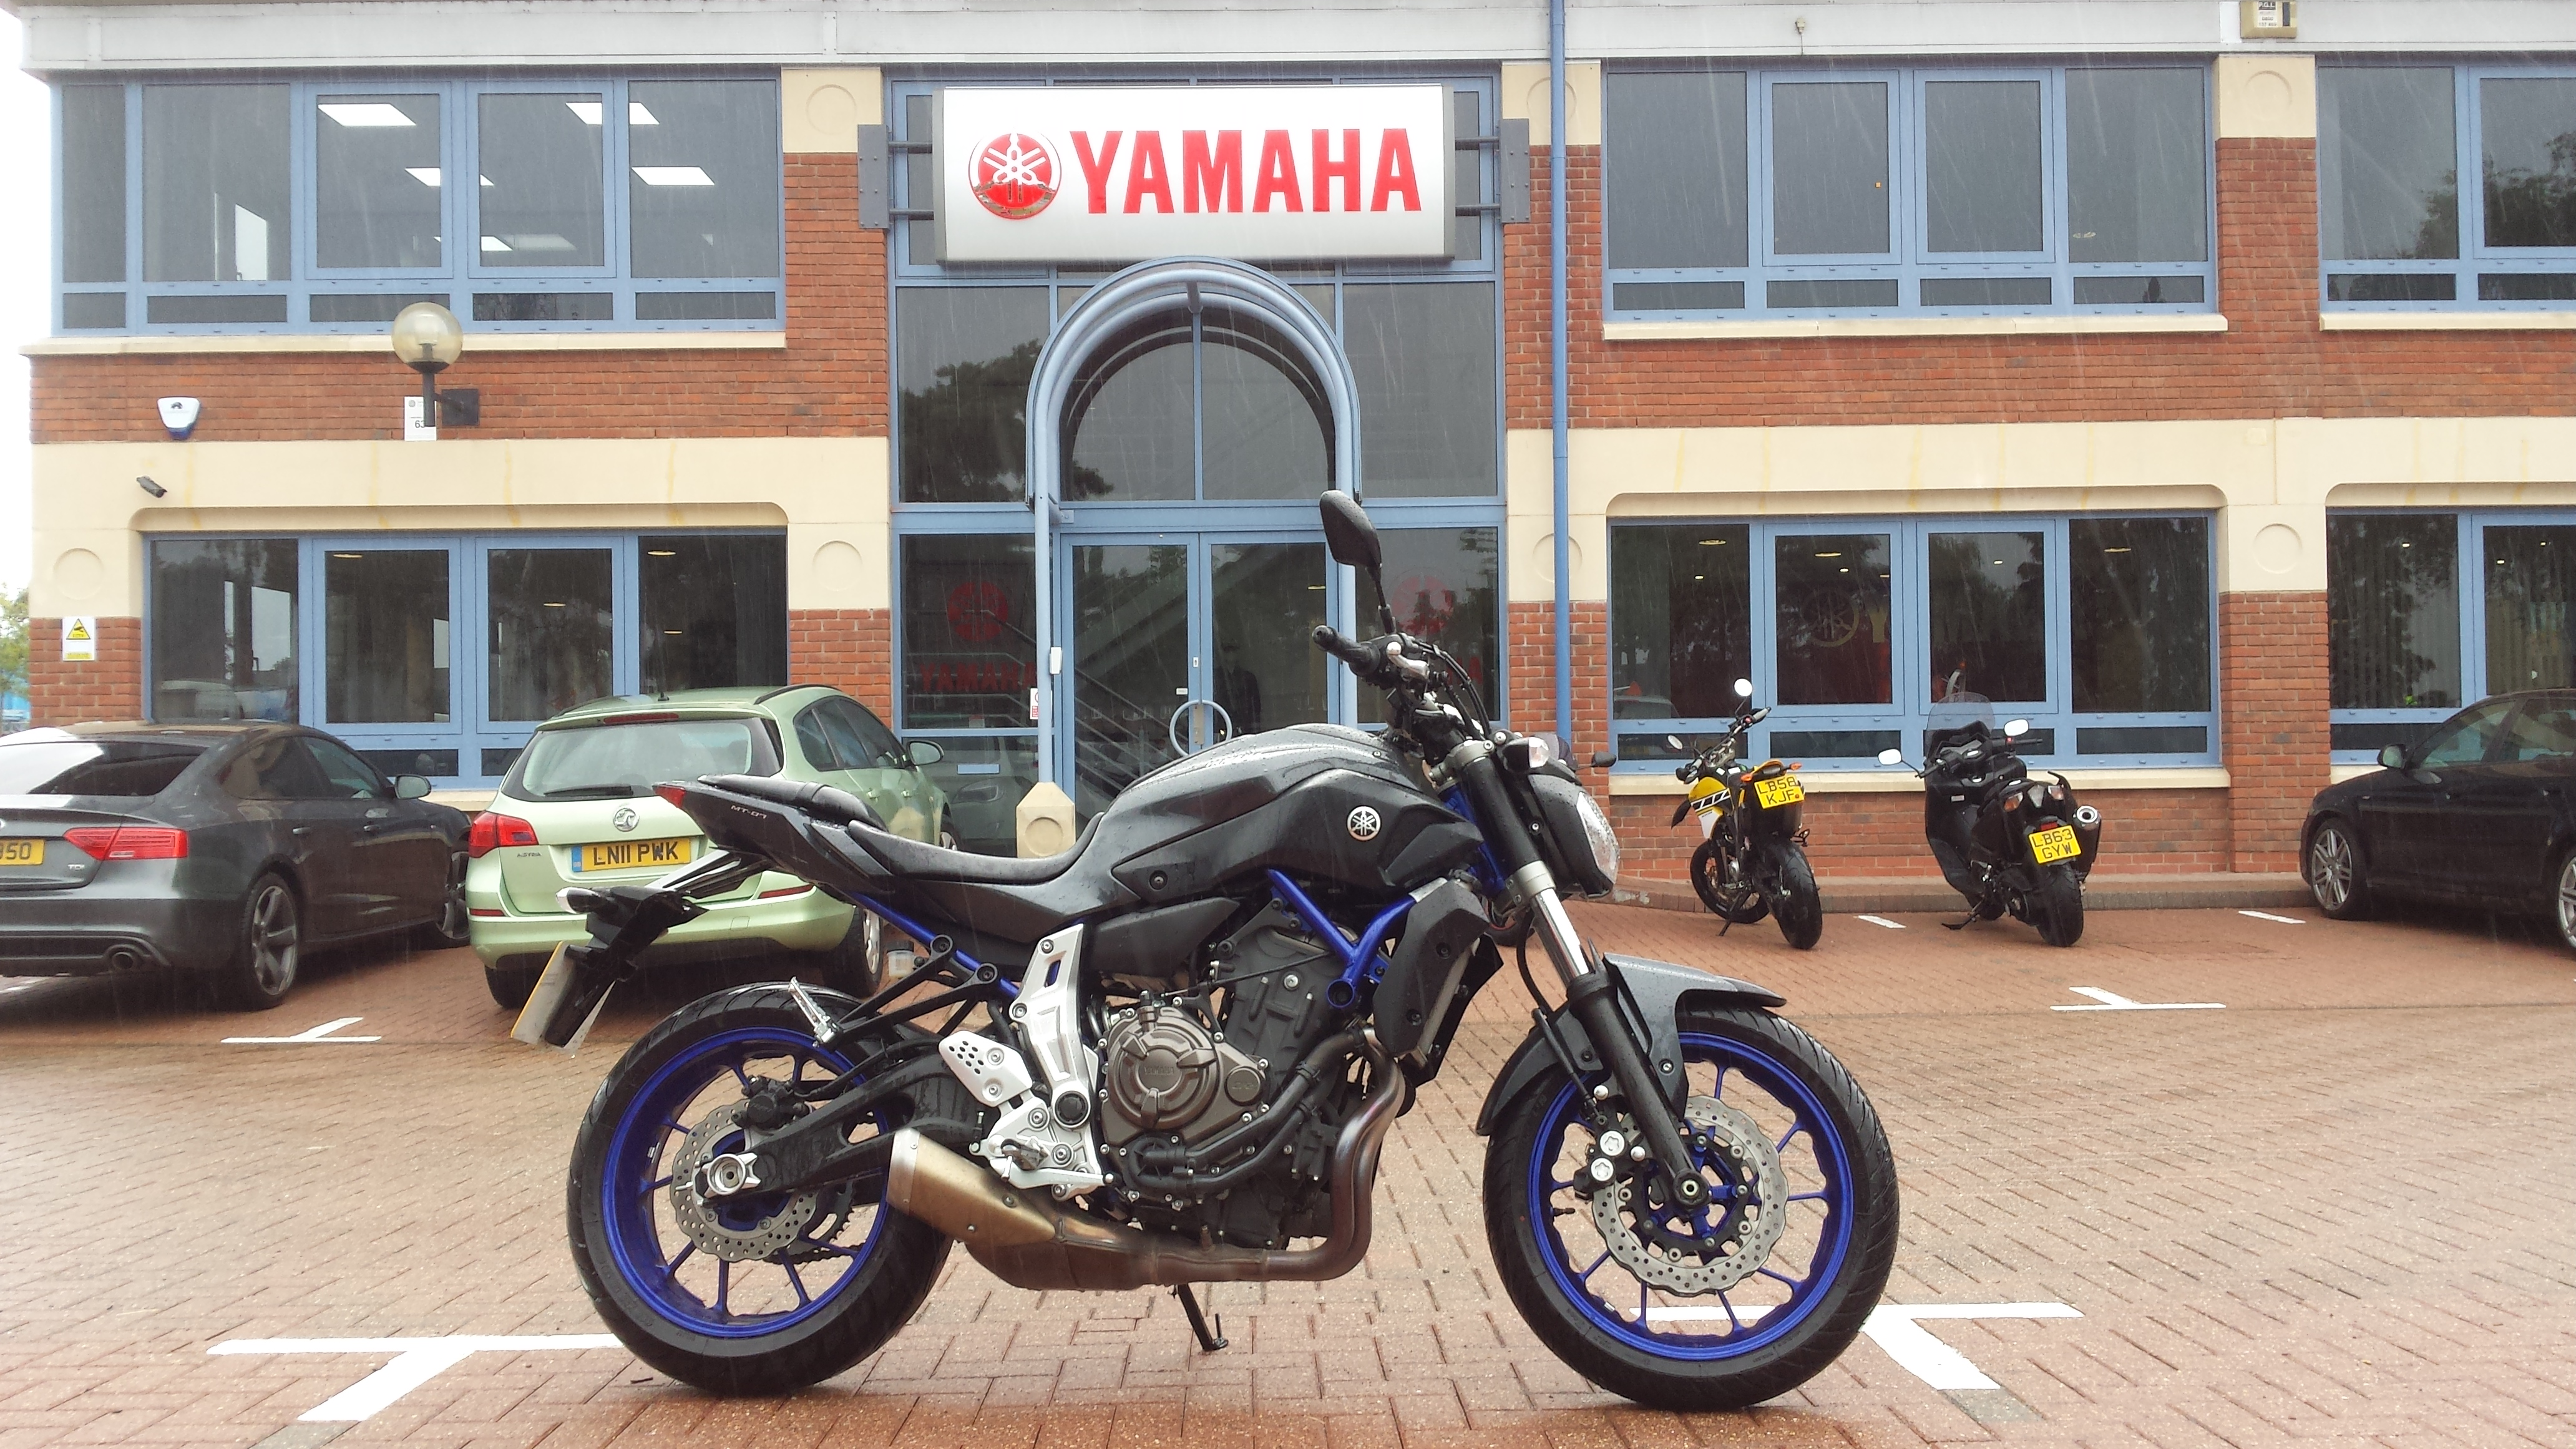 So Is Yamahas Mt 07 Really Better Than An Sv650s Visordown